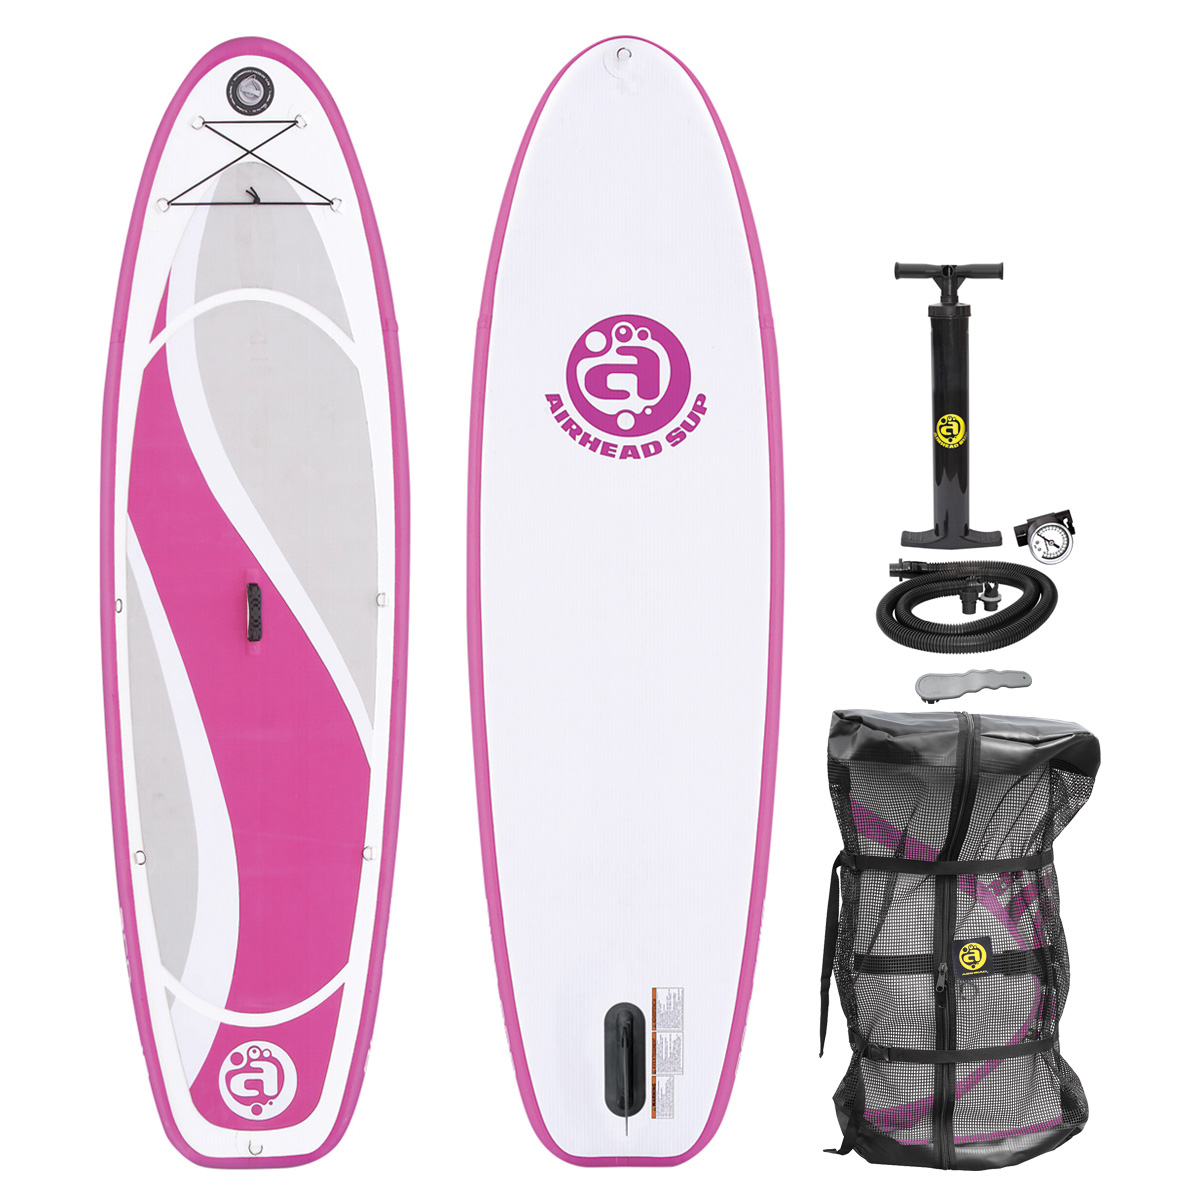 Airhead BLISS 930 Inflatable Stand Up Paddle Board, Pink SUP